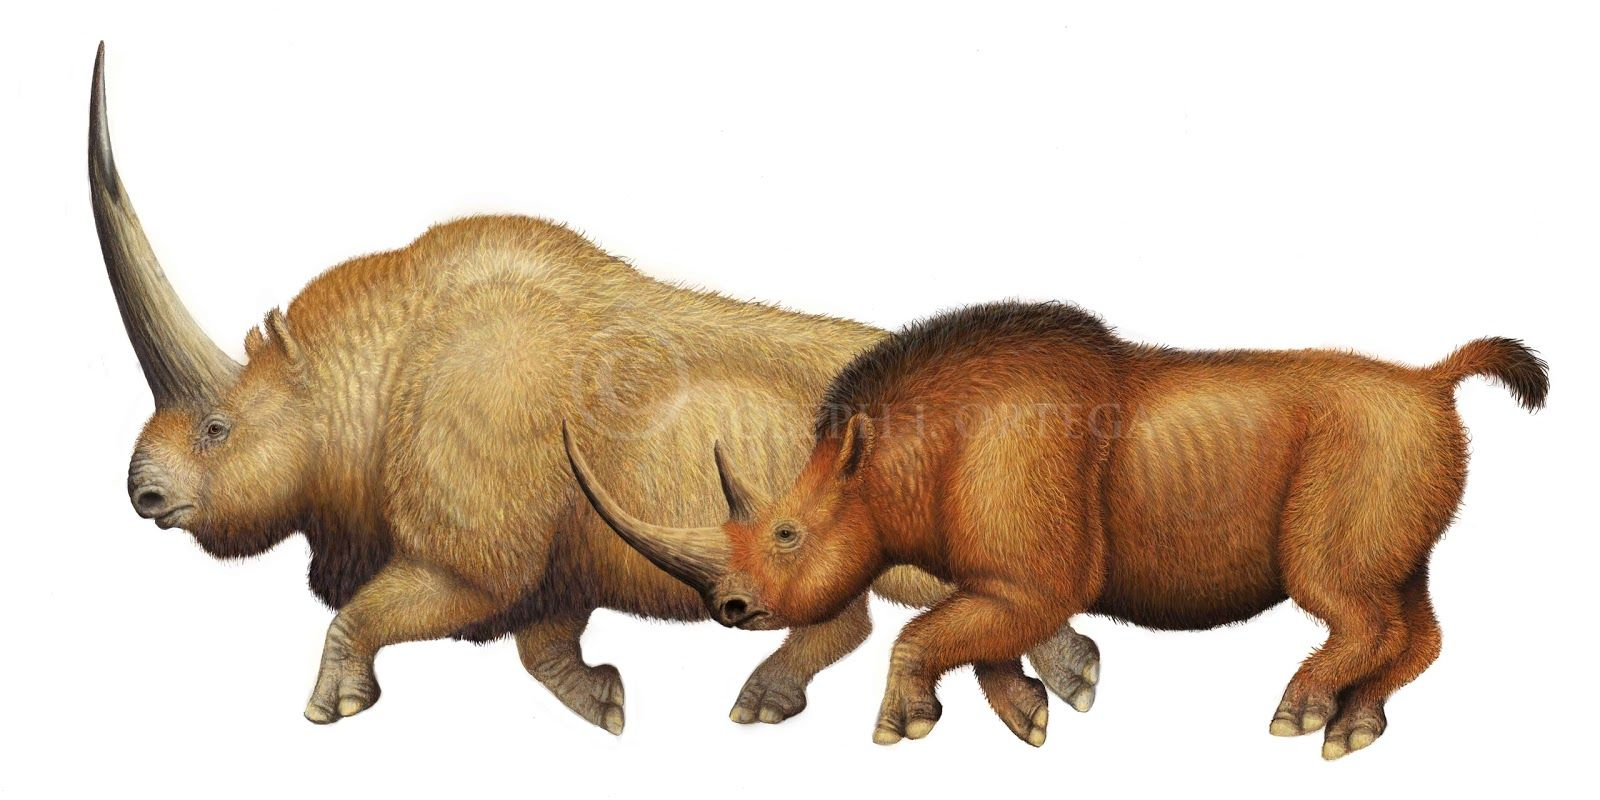 rhinoceros comparison If you compare a sumatran rhinoceros to a common hippopotamus, the hippo will almost certainly be significantly larger the answer to the size comparison between both animals always depends on the specific species and specimens.